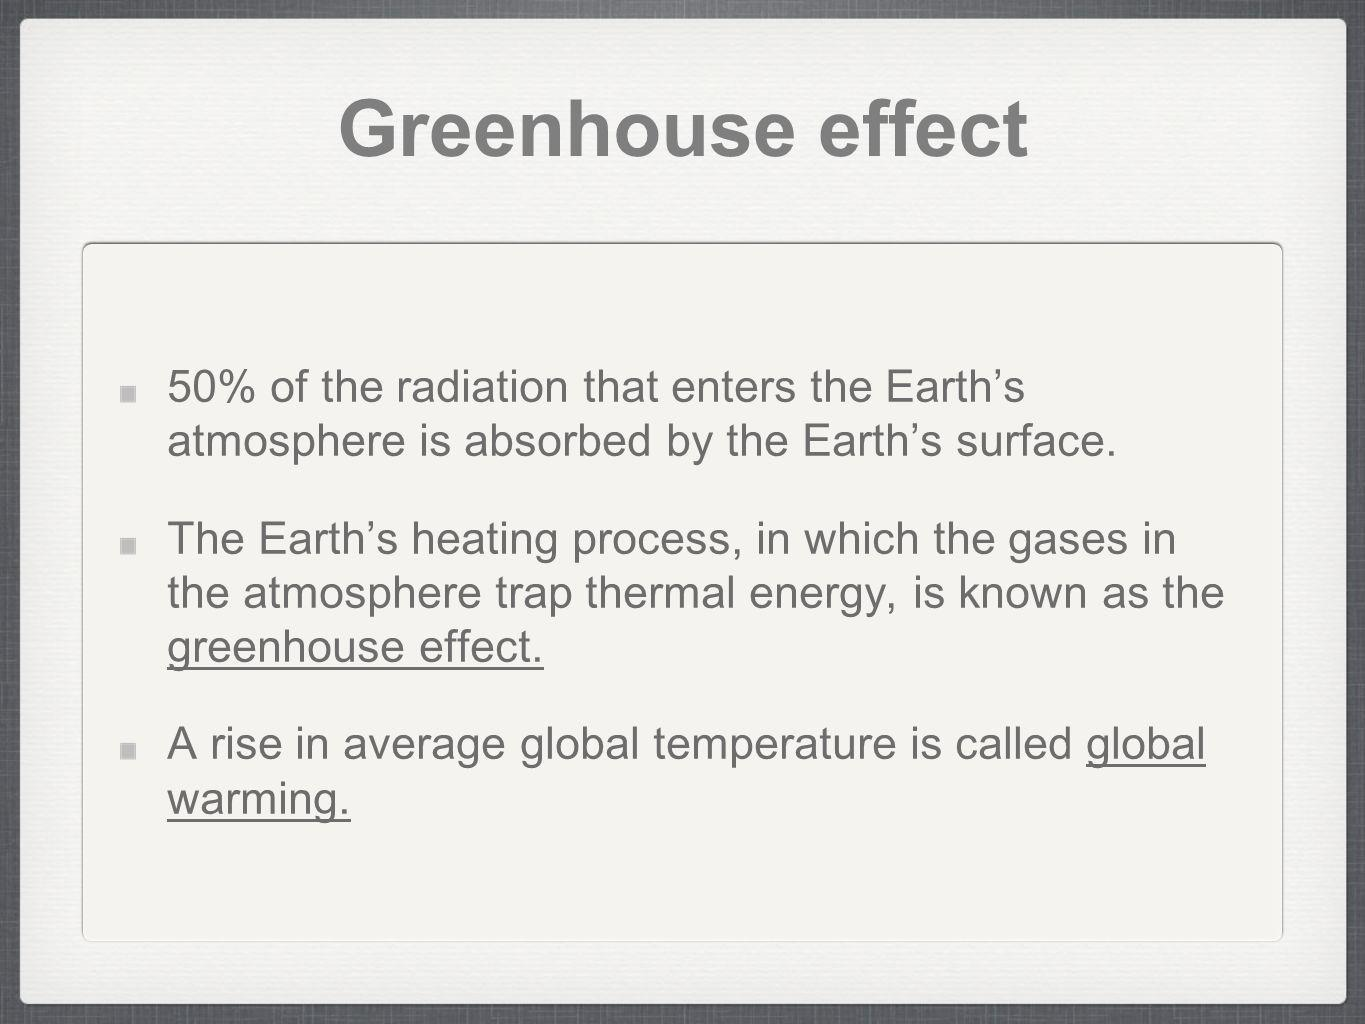 Greenhouse effect 50% of the radiation that enters the Earth's atmosphere is absorbed by the Earth's surface.